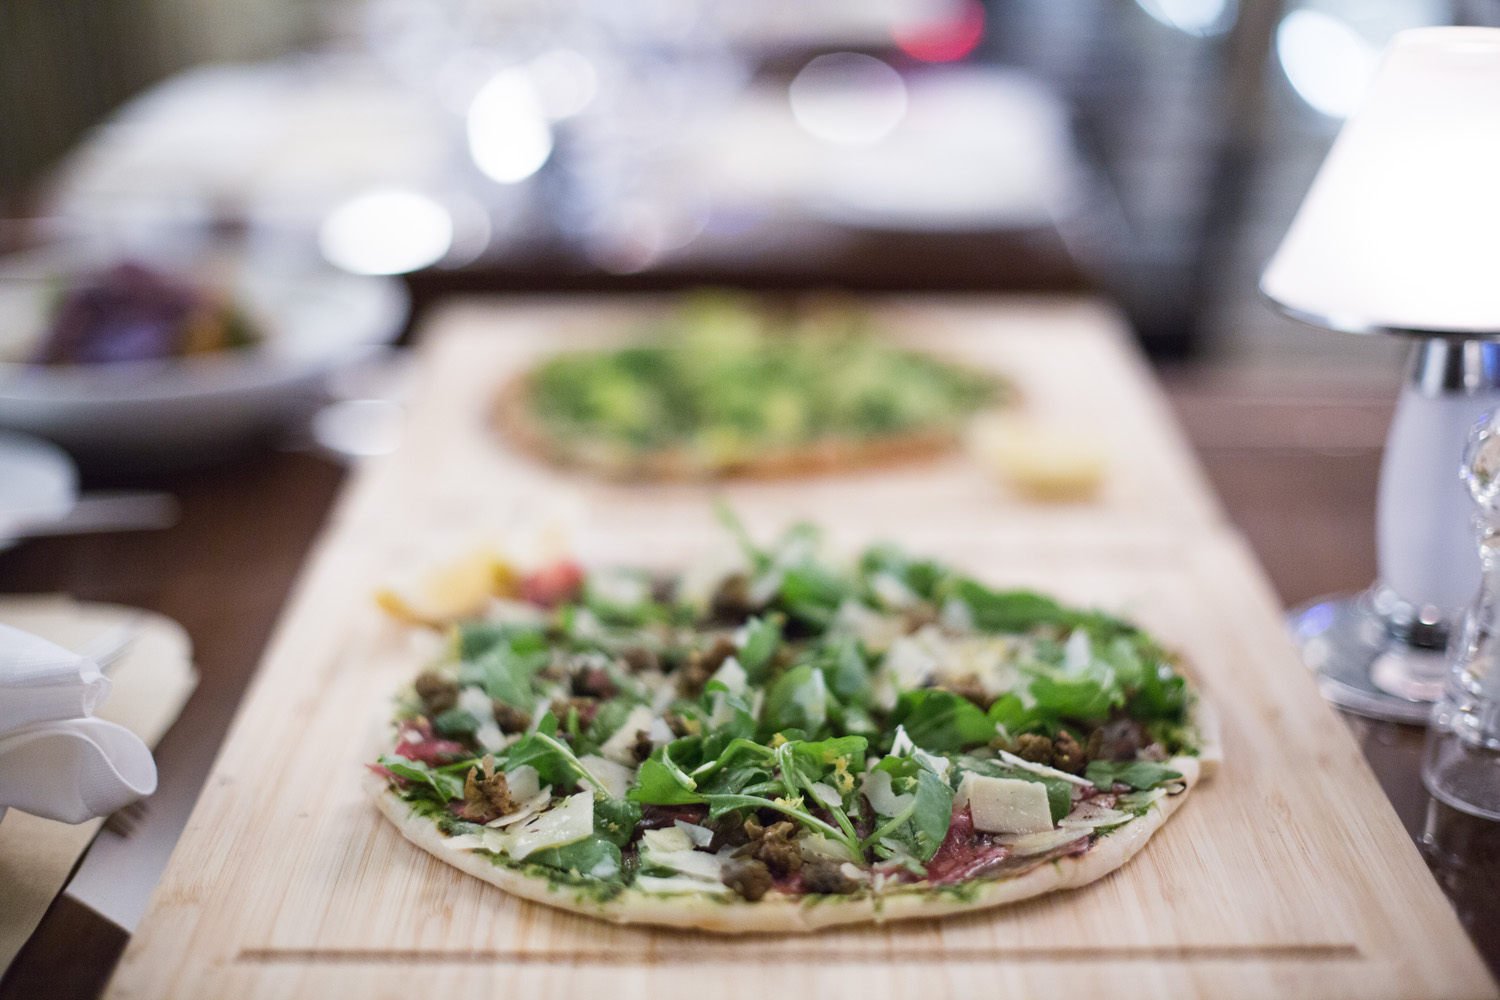 BEEF CARPACCIO FLATBREAD with herb mayo, arugula, crispy capers, lemon and parmesan